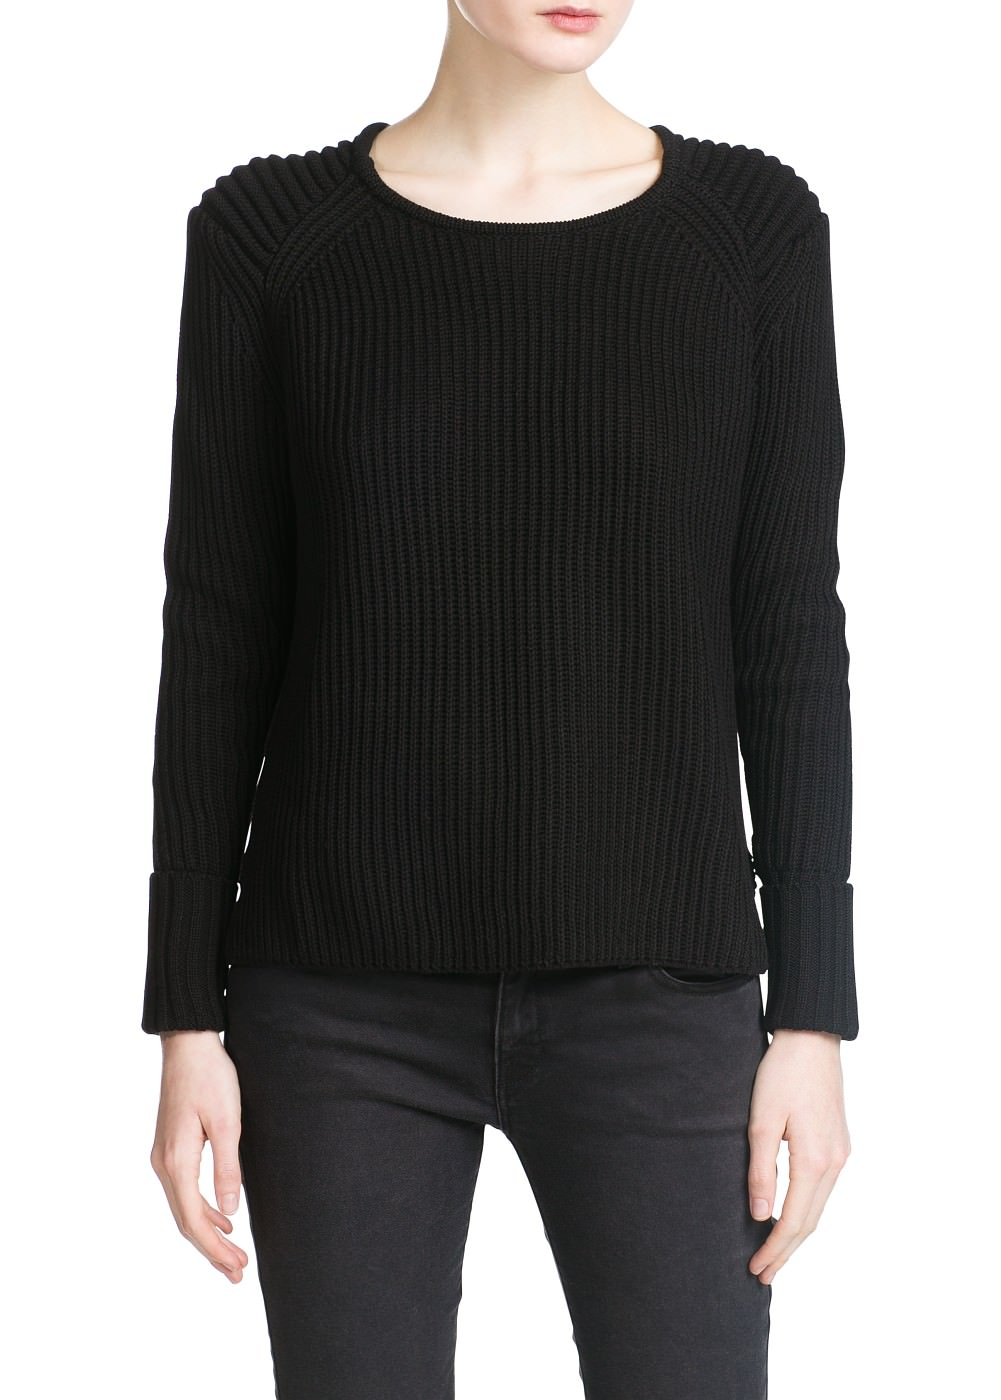 Pull-over maille anglaise -  							Cardigans et pull-overs - 							Femme - 							MANGO